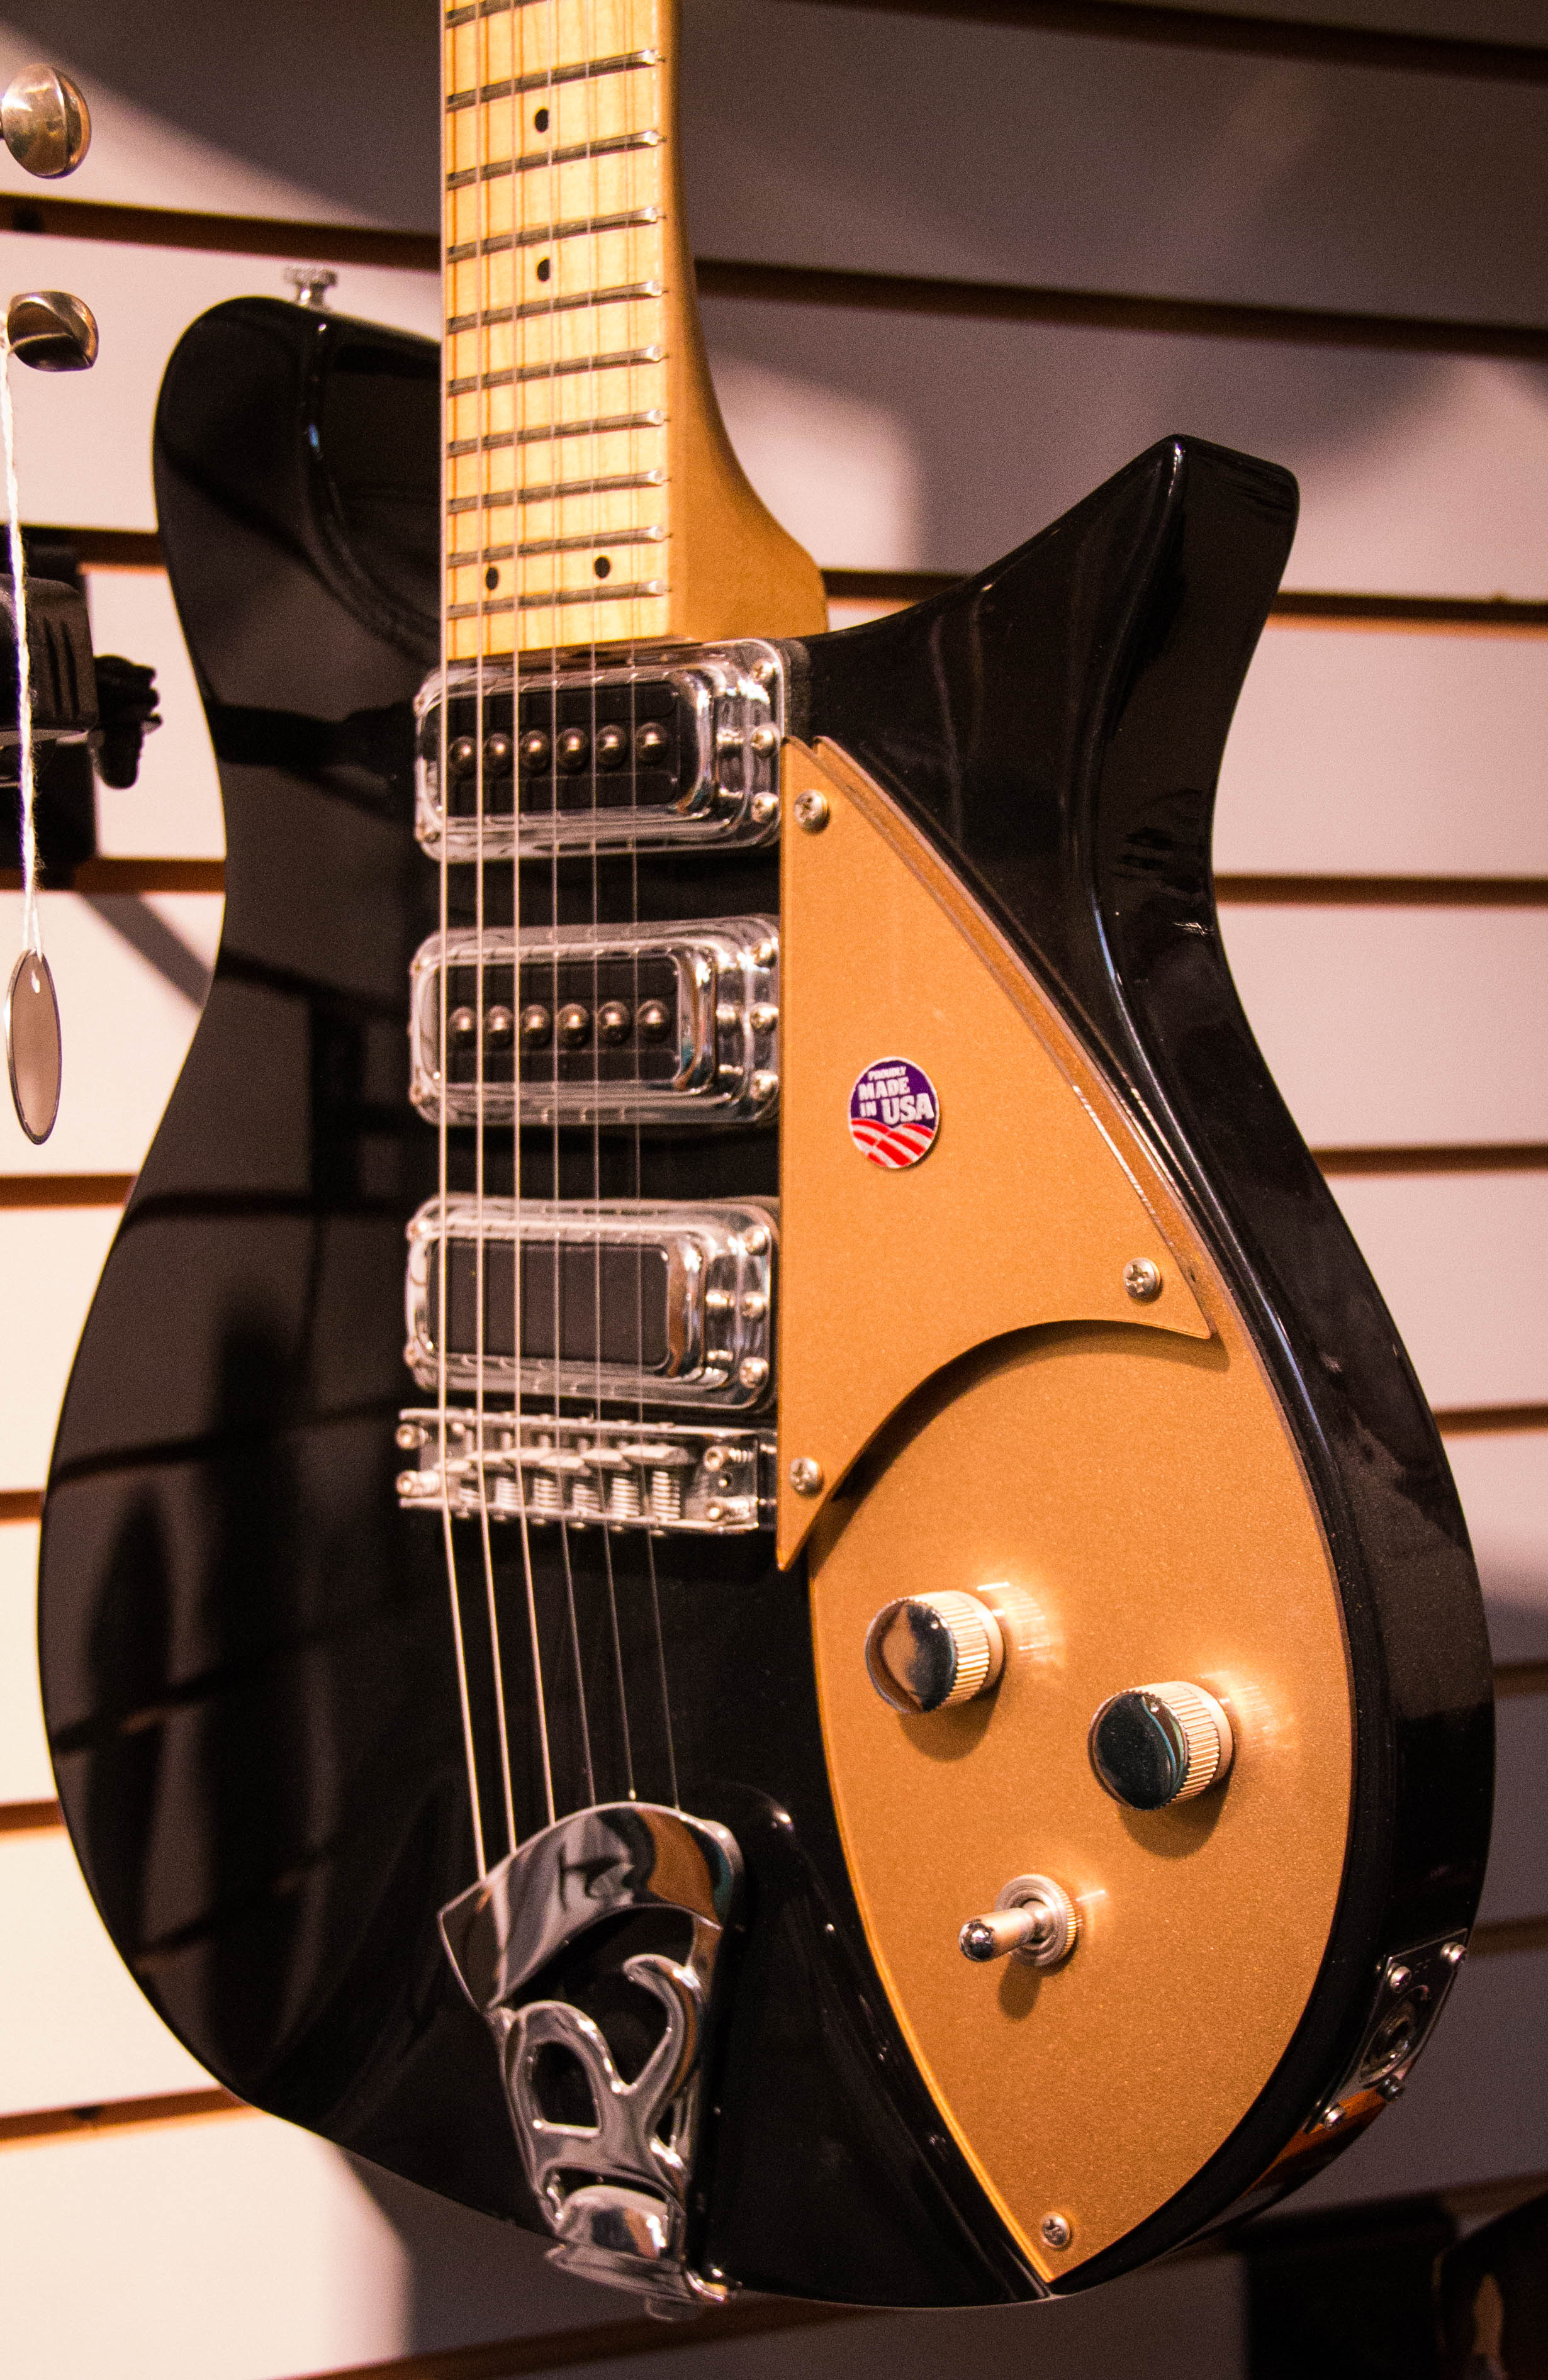 One of the two Jackson Browne Limited Edition prototypes. This model never went past the prototype stage and was subsequently shelved.